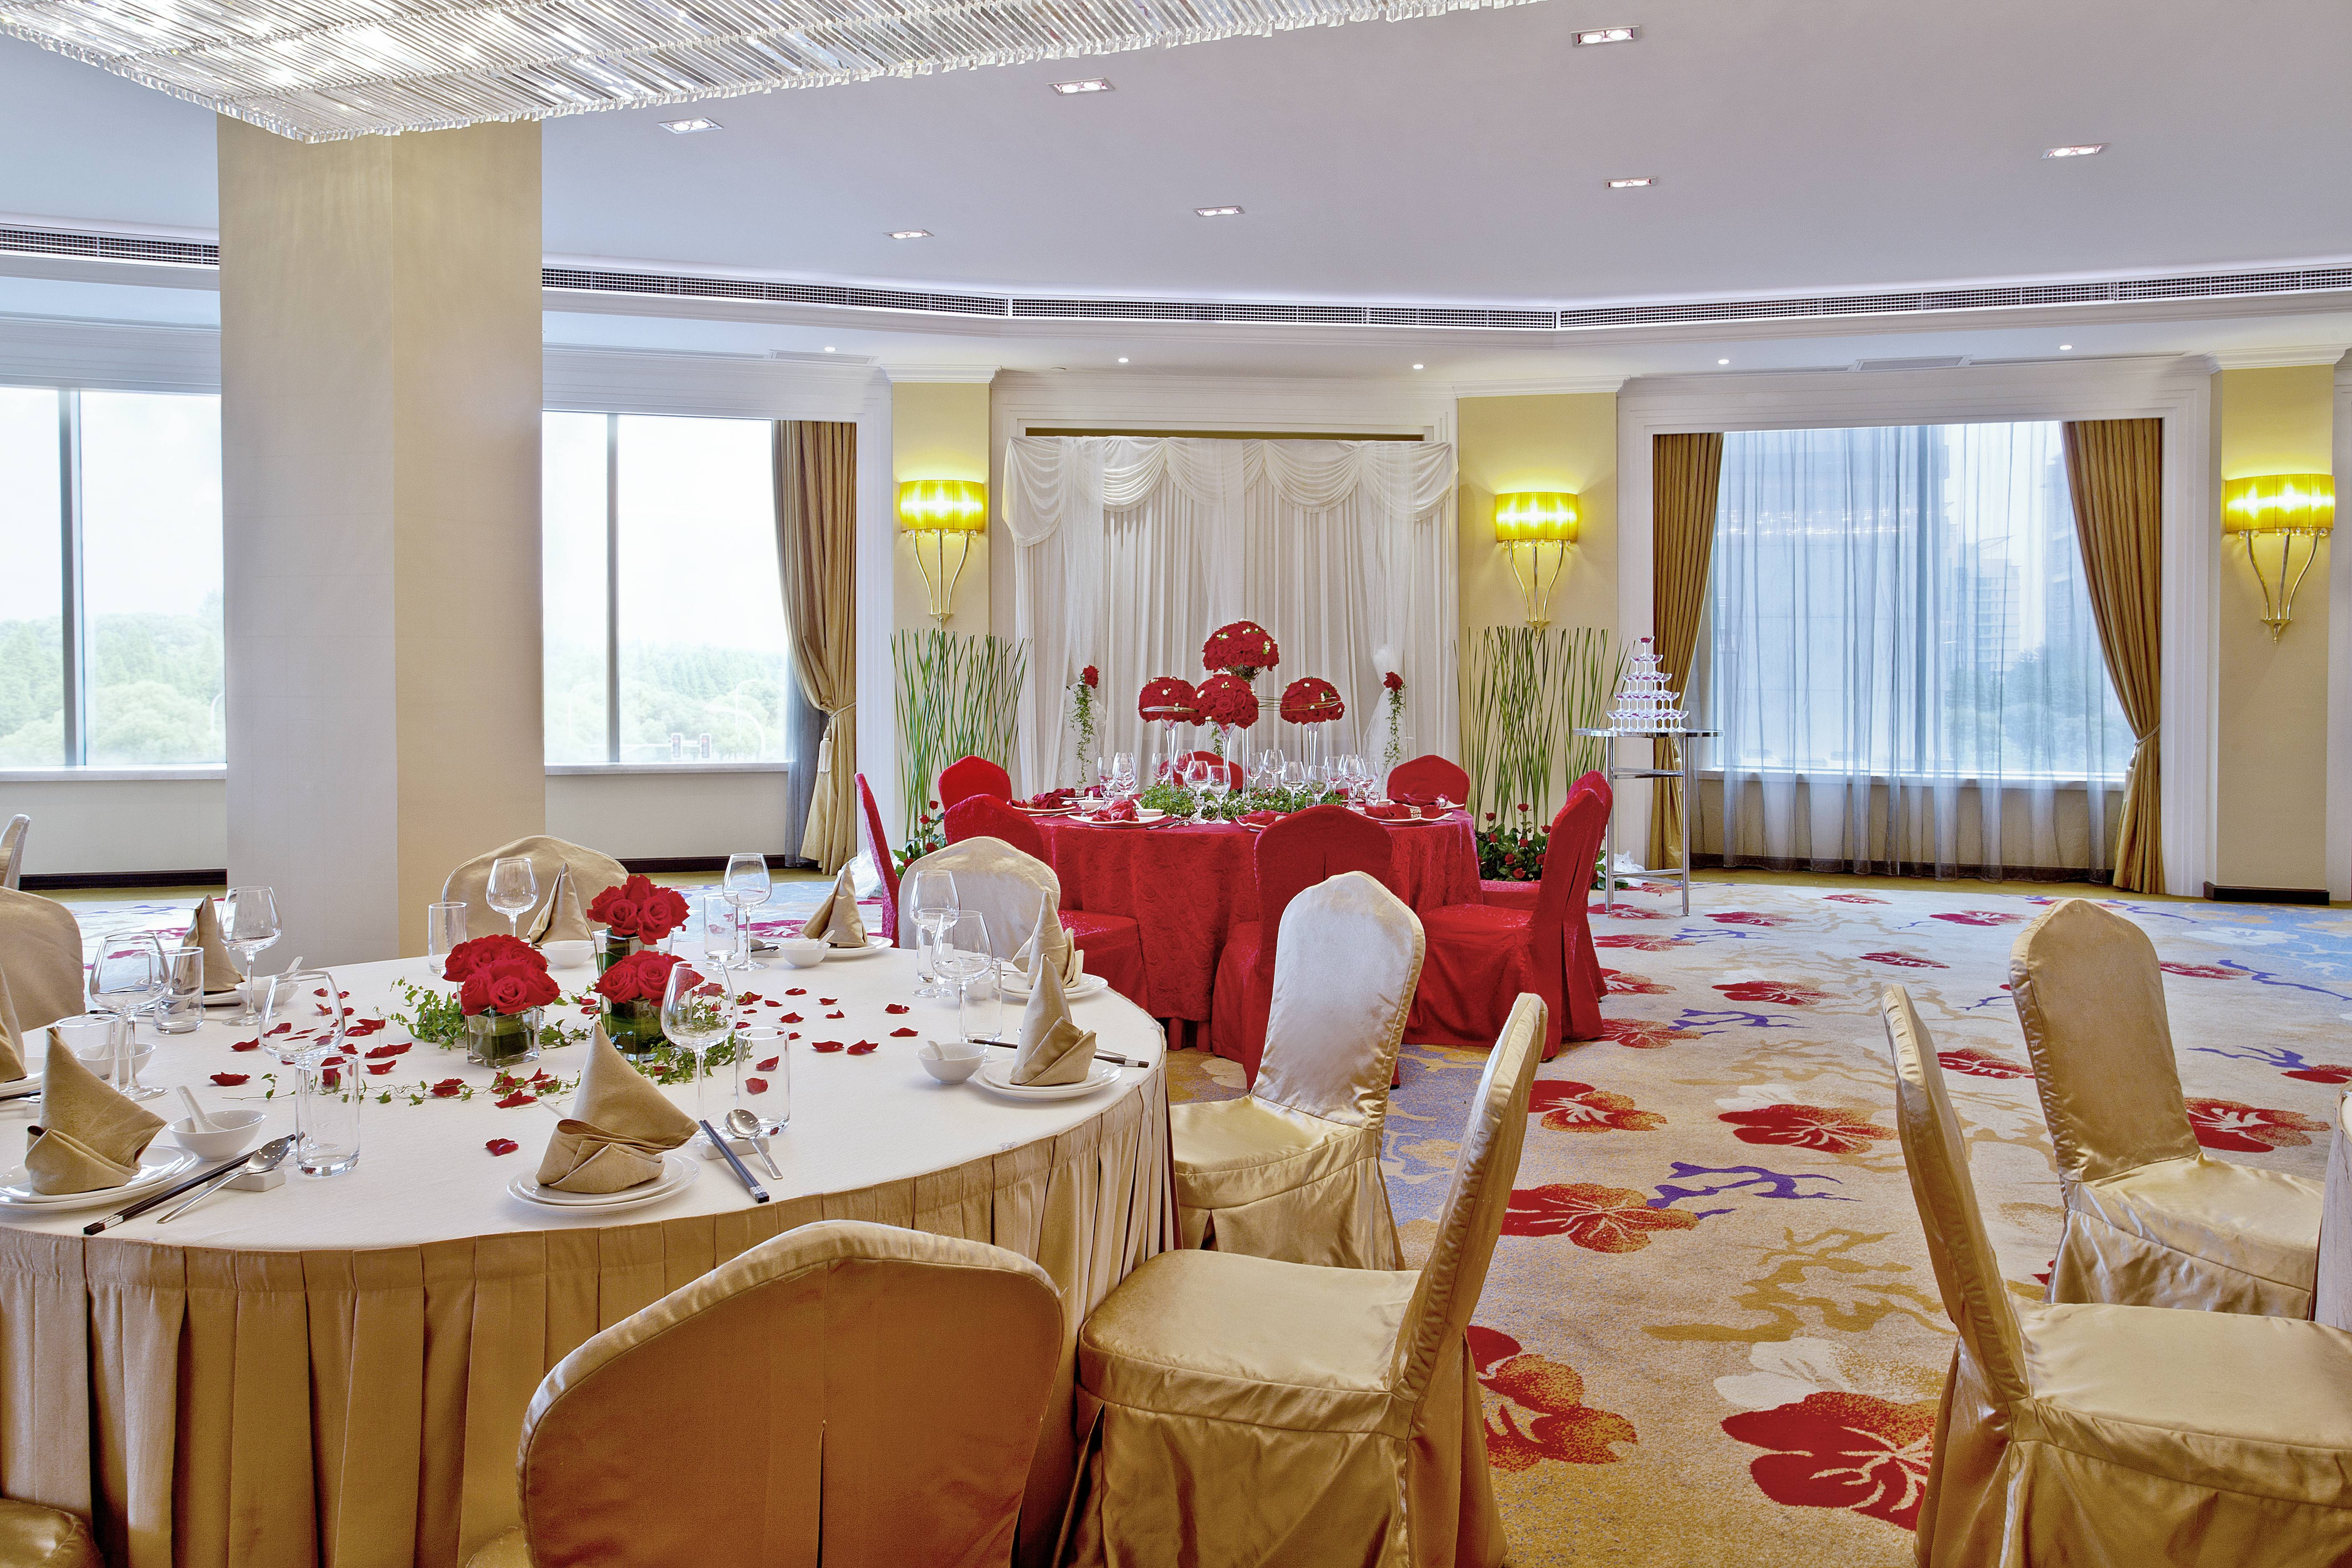 Meets your budget and expectation CNY3,388 / table for 10 persons